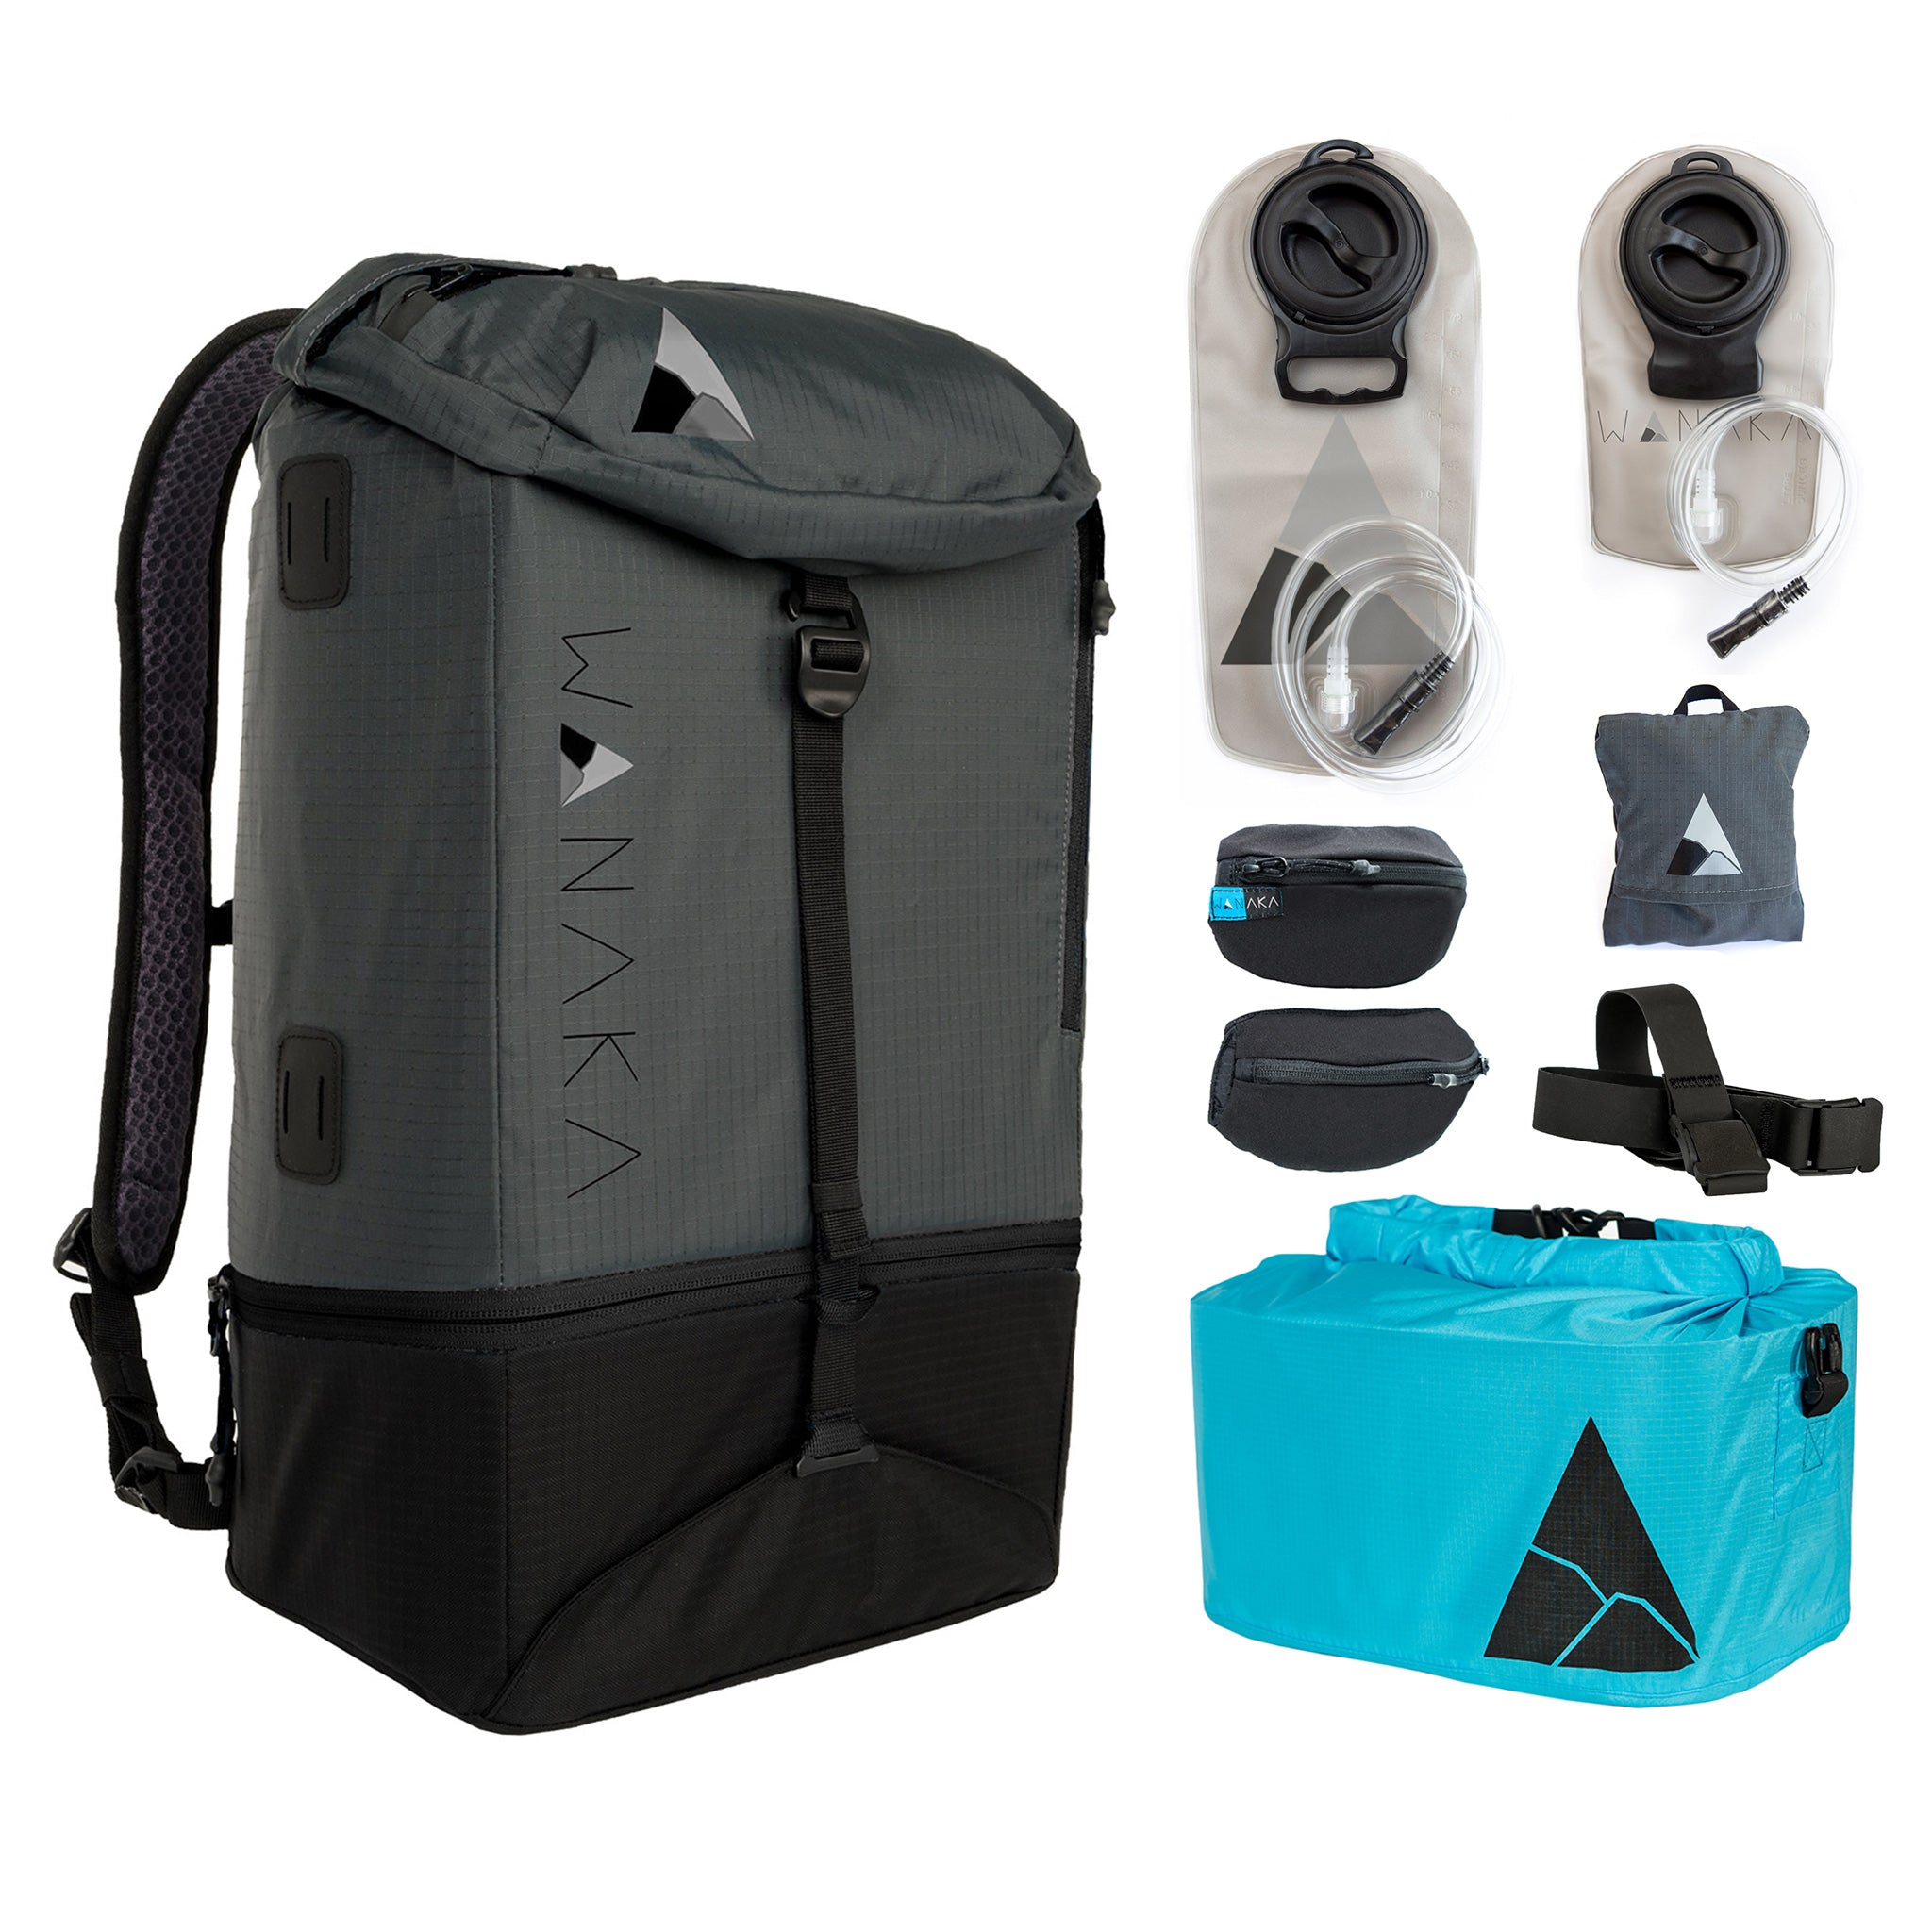 Charcoal/Black Complete Adventure Package